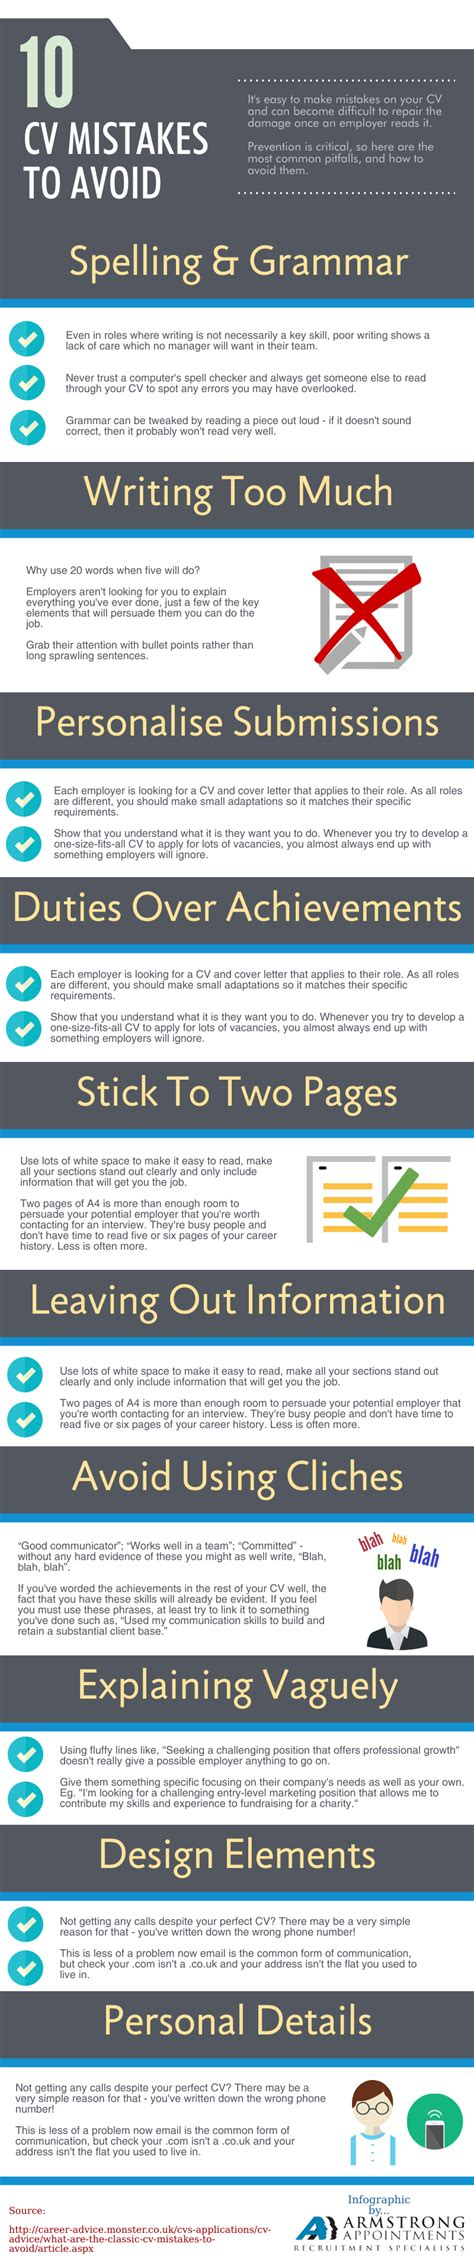 top 10 most common cv mistakes to avoid infographic